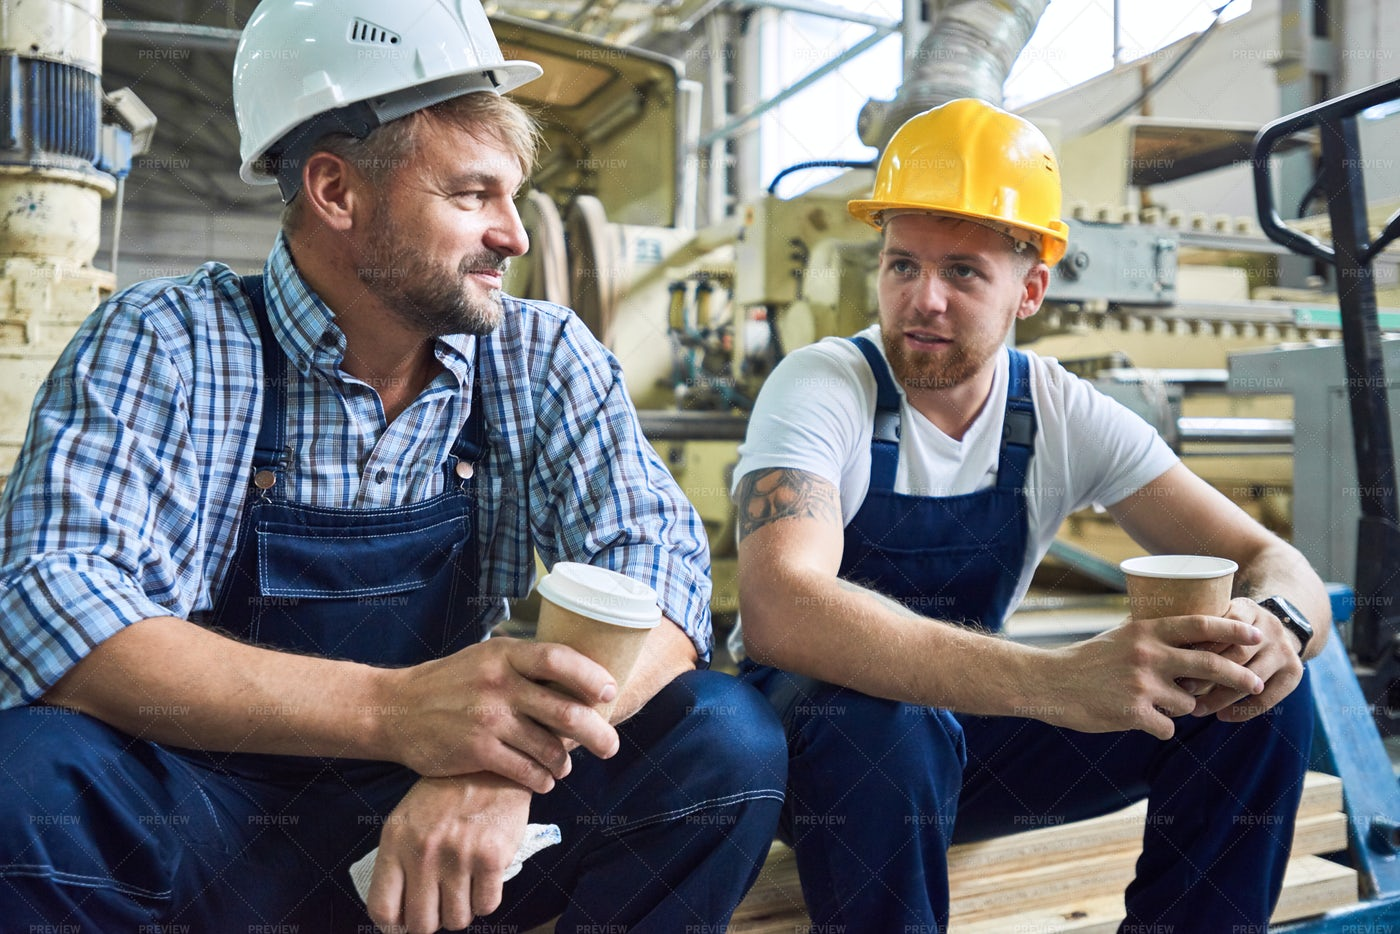 Two Workers On Coffee Break: Stock Photos